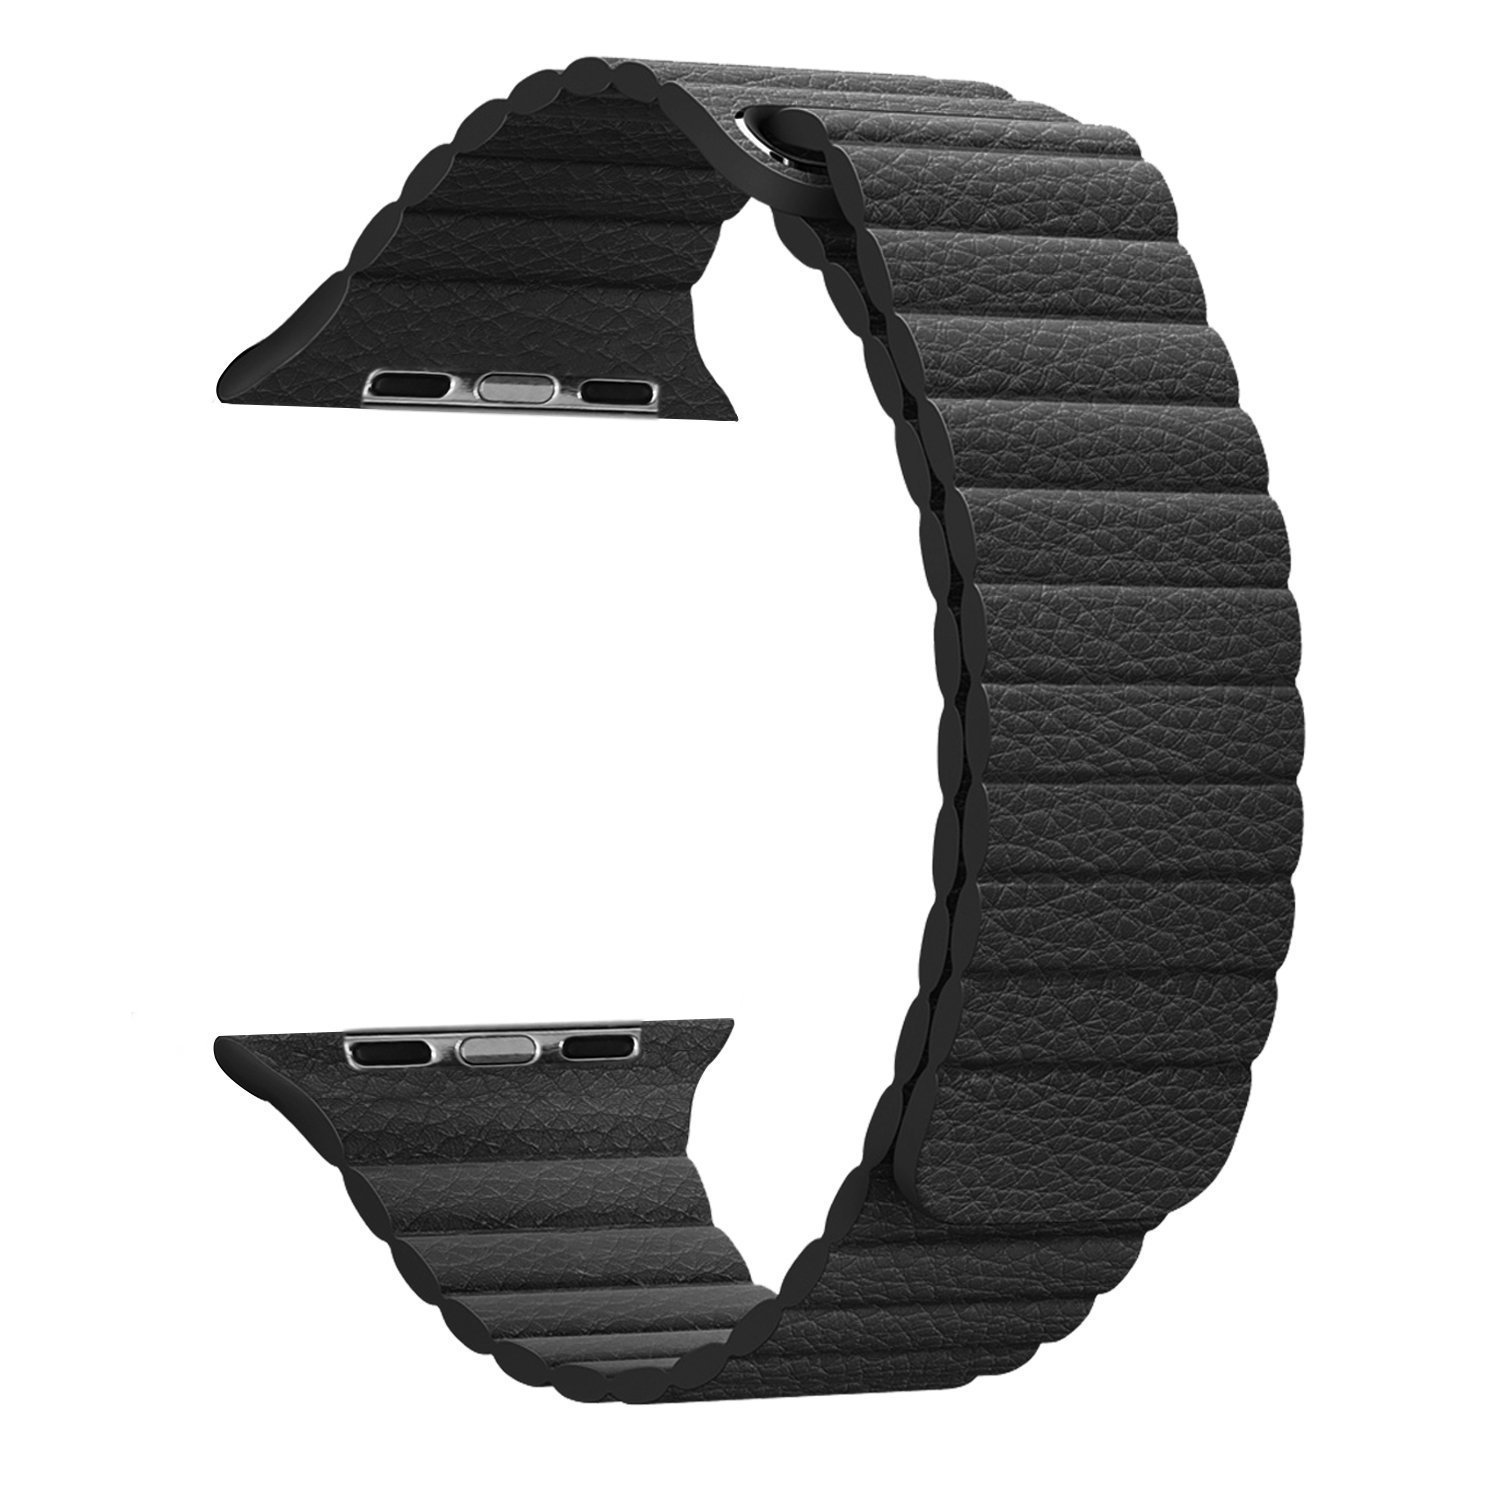 Apple Watch Series 1 Series 2 Band 42mm, BRG Leather Loop with Adjustable Magnetic Closure iWatch Band Replacement Bracelet Strap for Apple Watch Sport and Edition 42mm Medium - Black